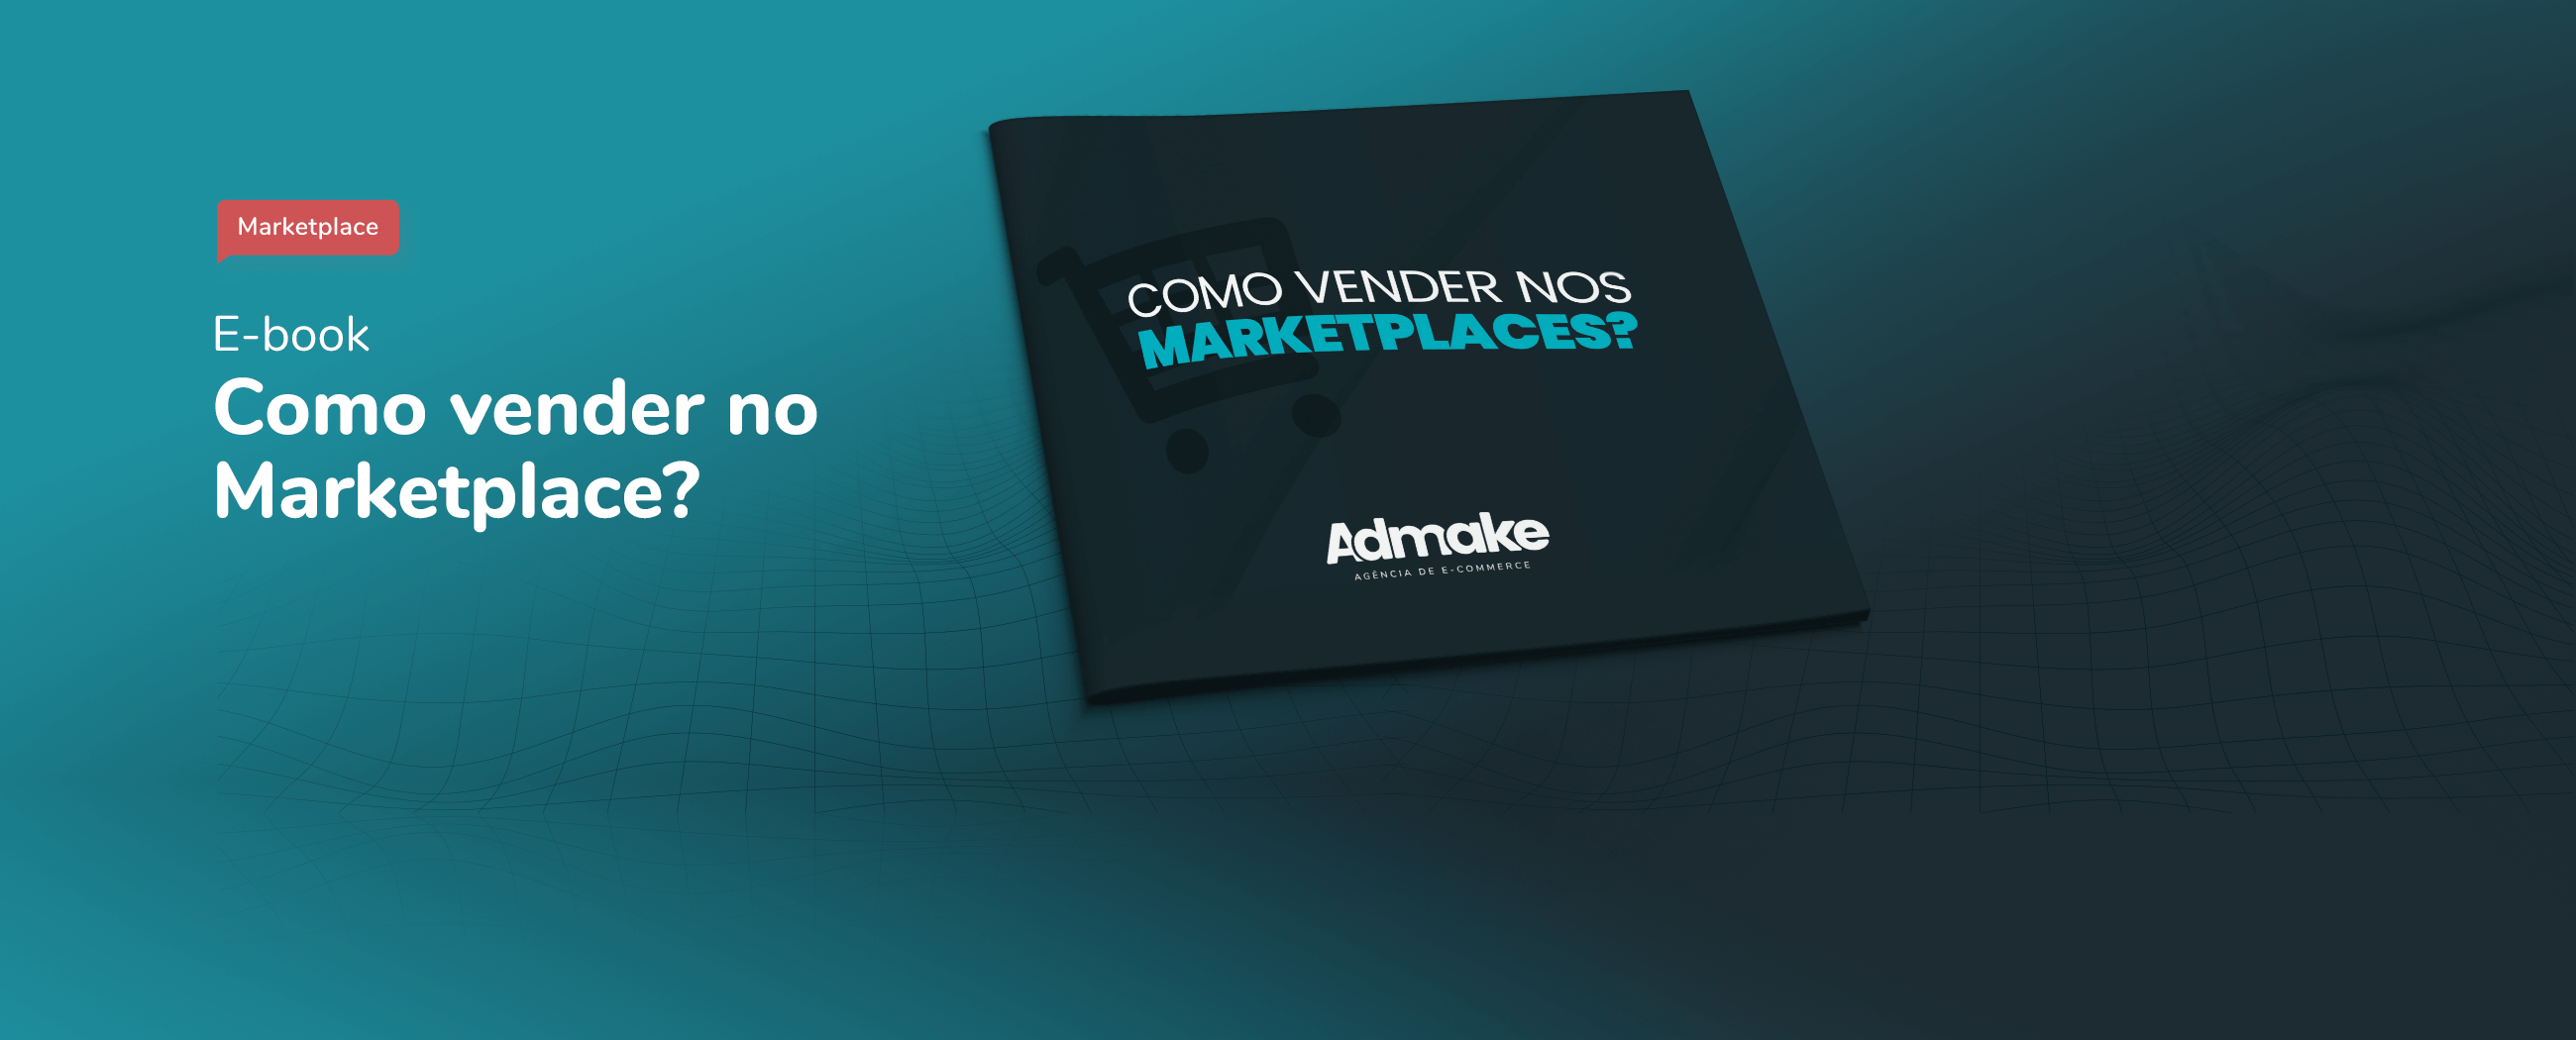 full-blog-admake-jul19-ebook-mktplace2